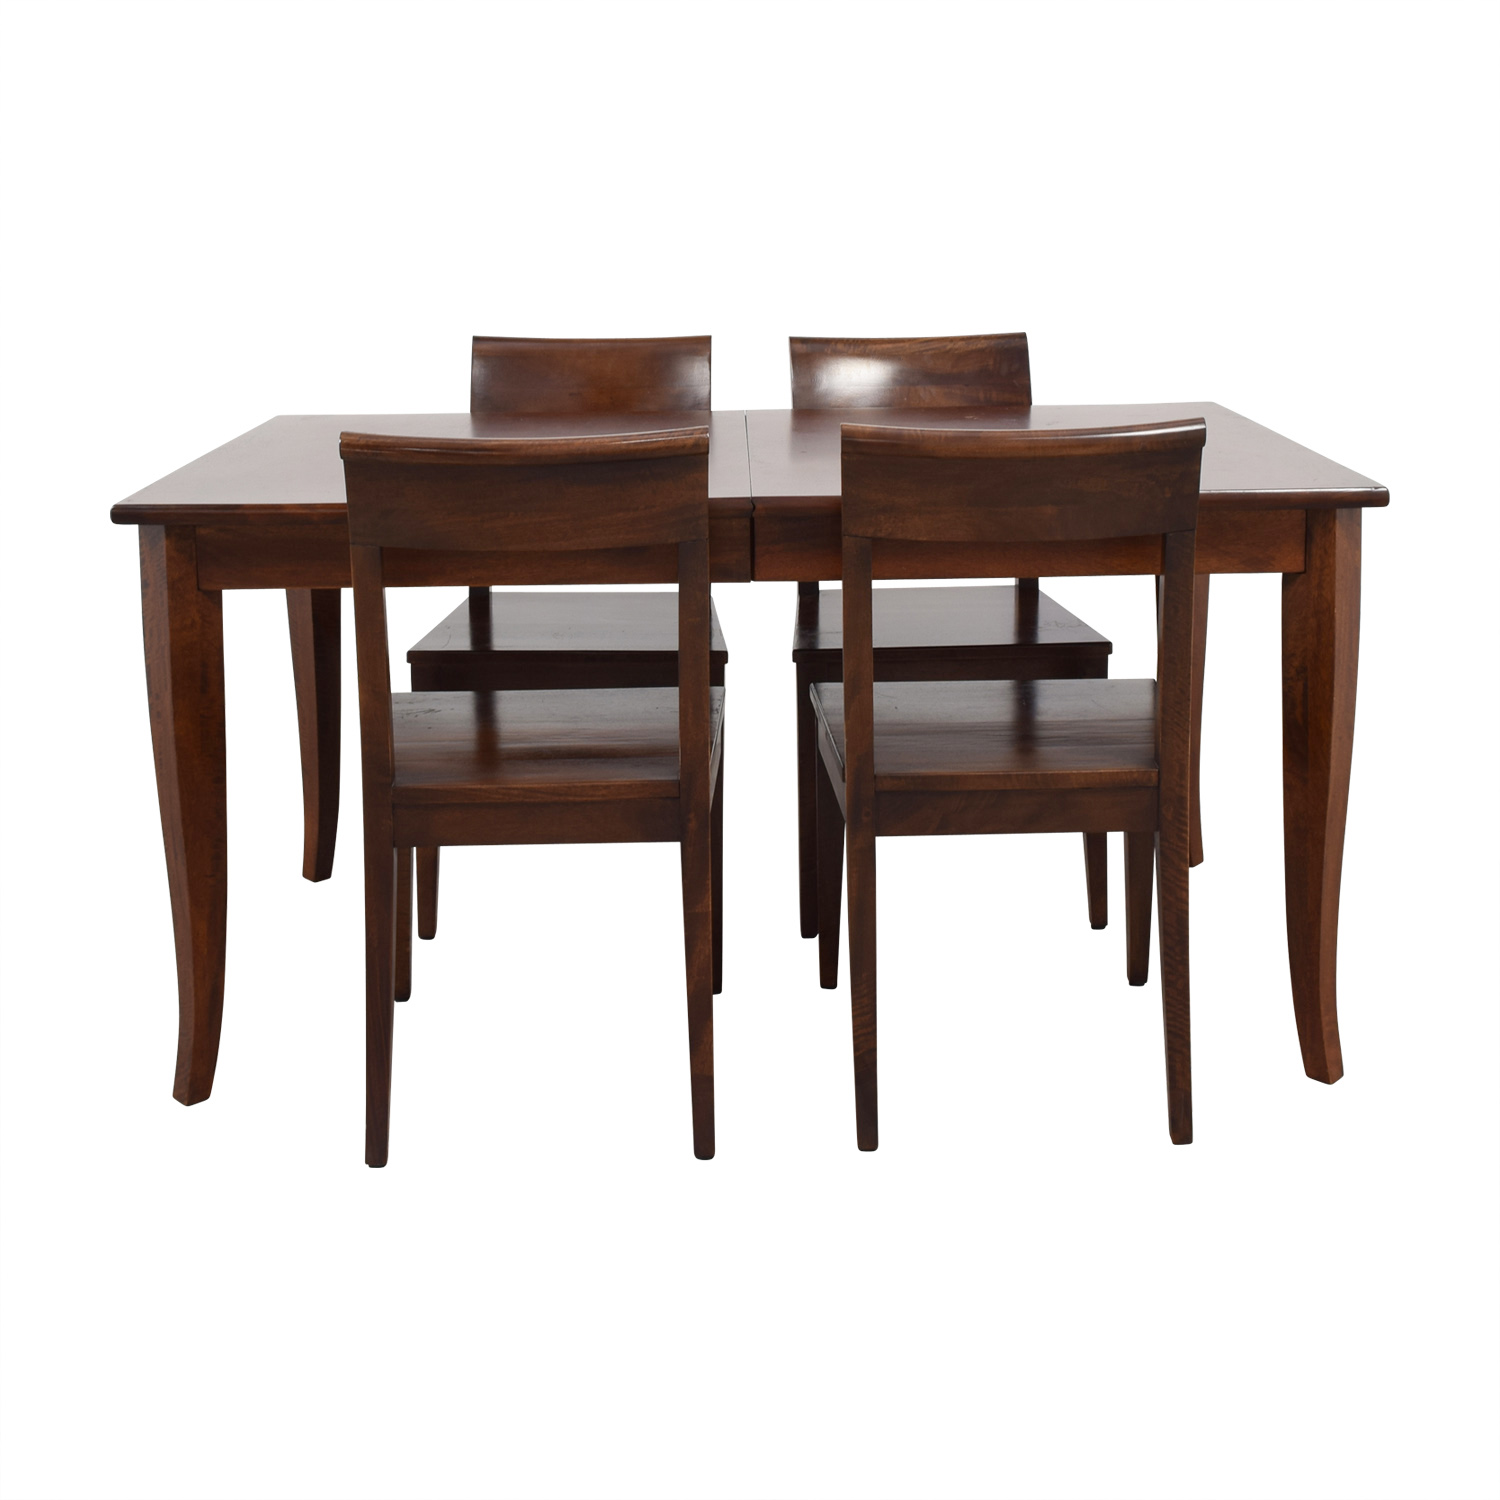 Crate & Barrel Crate & Barrel Cabria Extendable Dining Set second hand